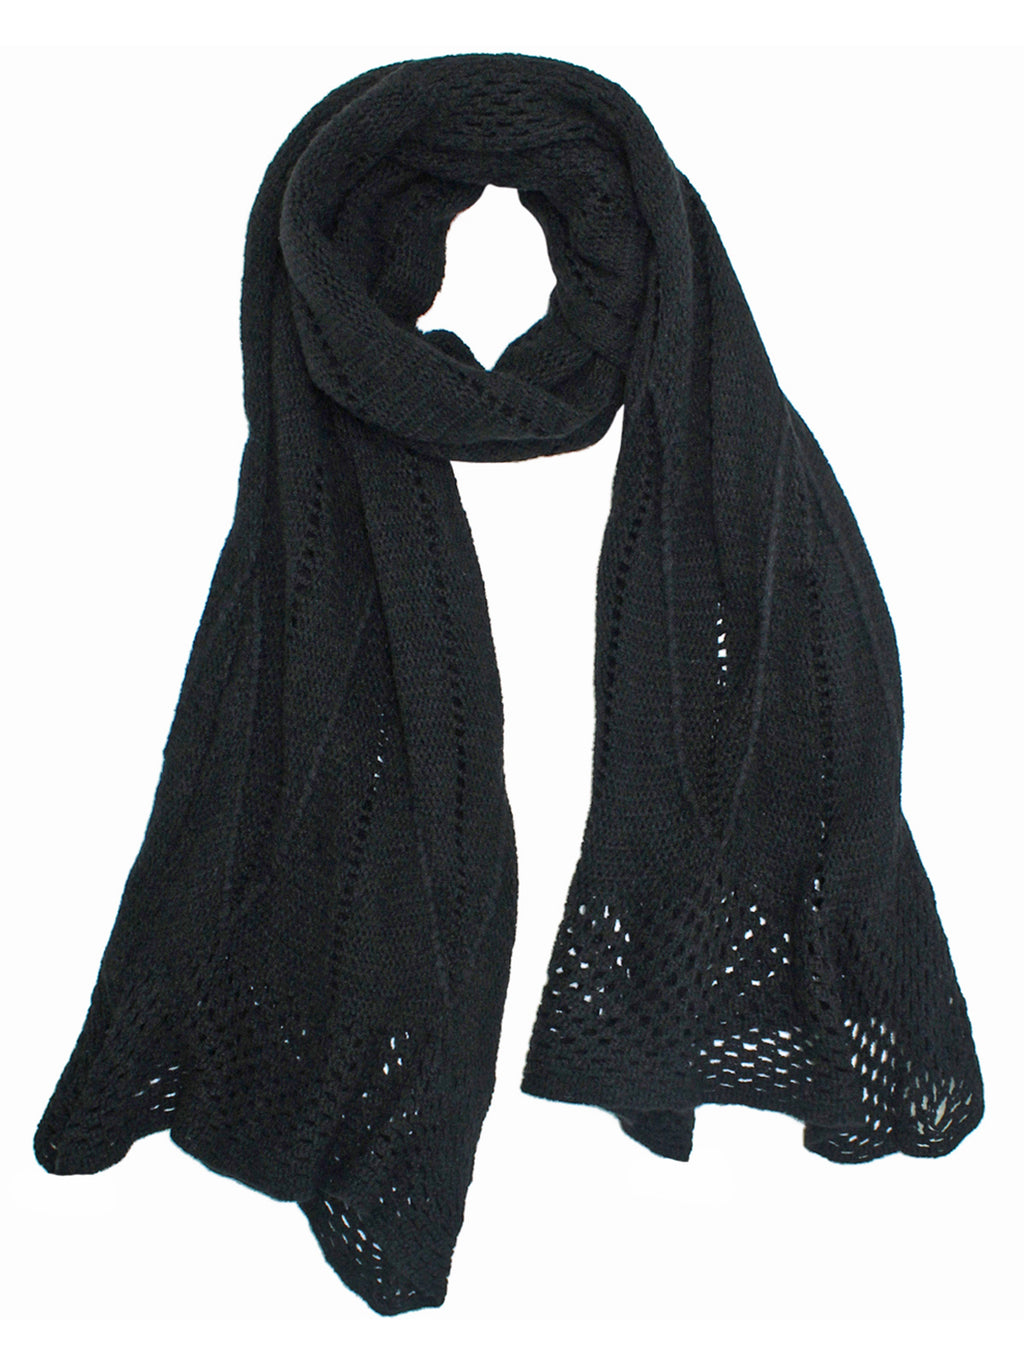 Delicate Crocheted Knit Winter Scarf